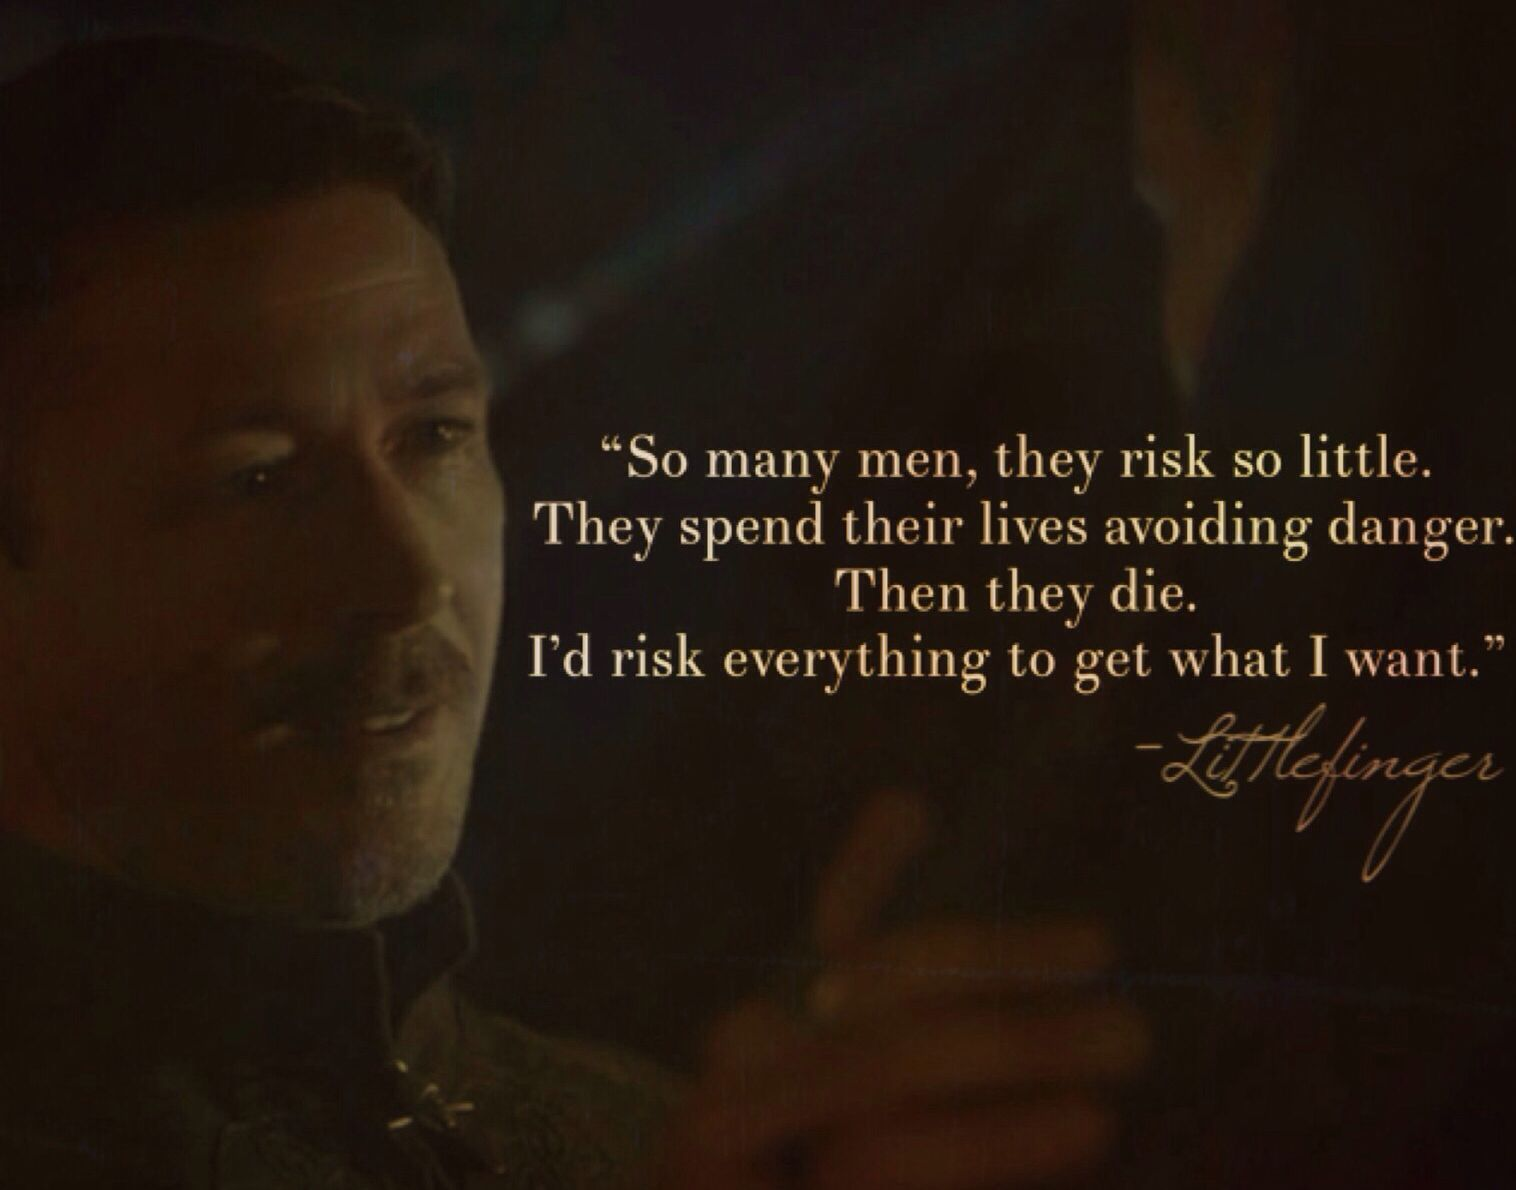 Image result for Little Finger want everything